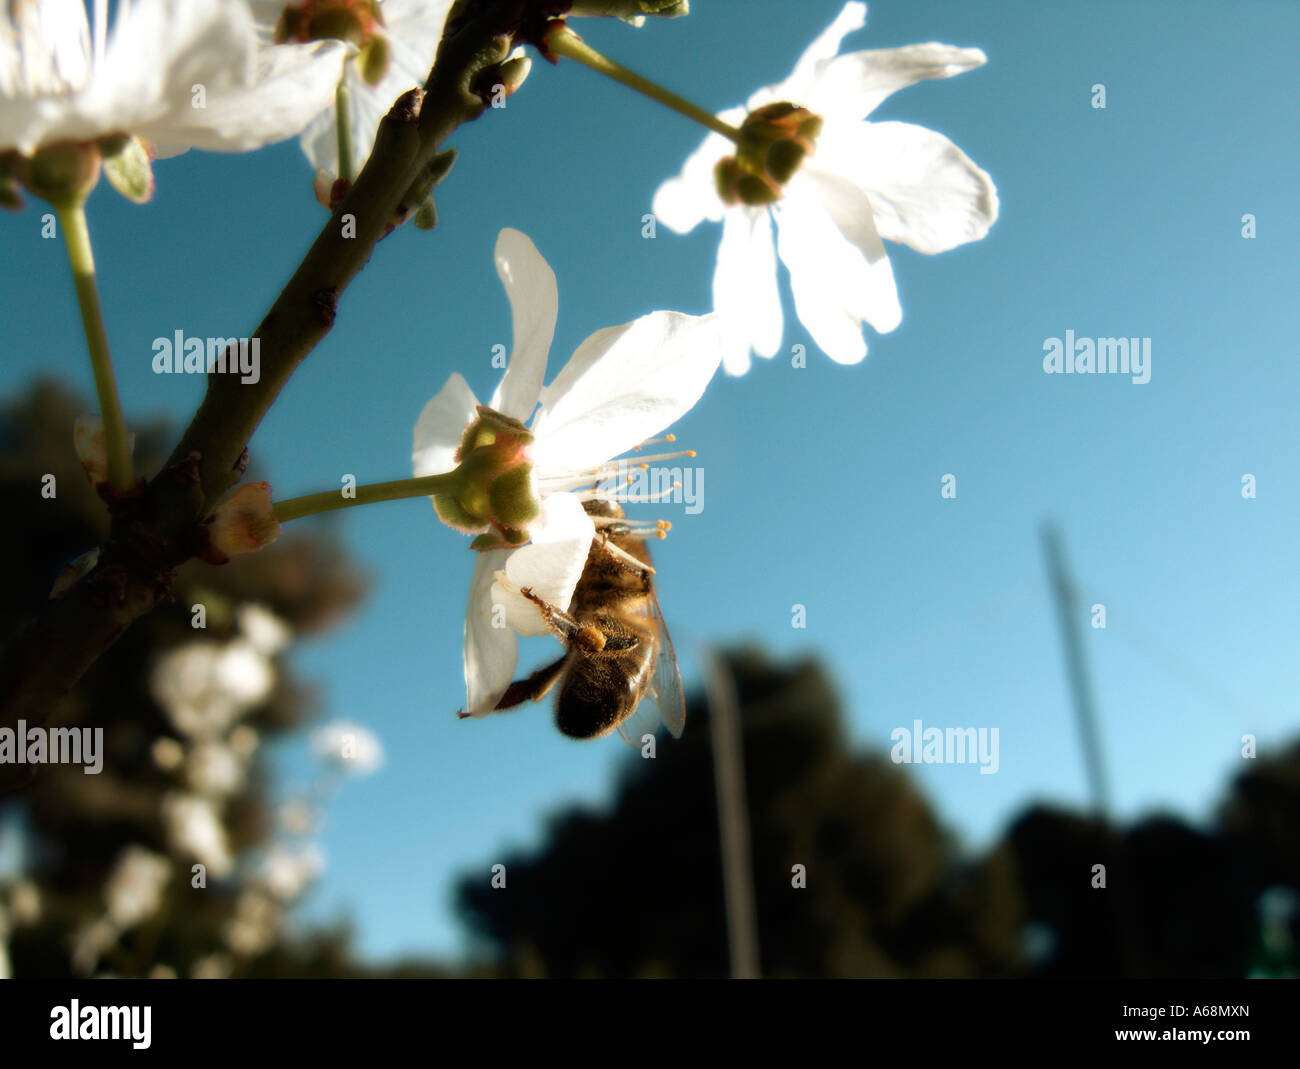 A bee collecting pollen in the first plum blossoms of the season. Valencia. Spain. Stock Photo